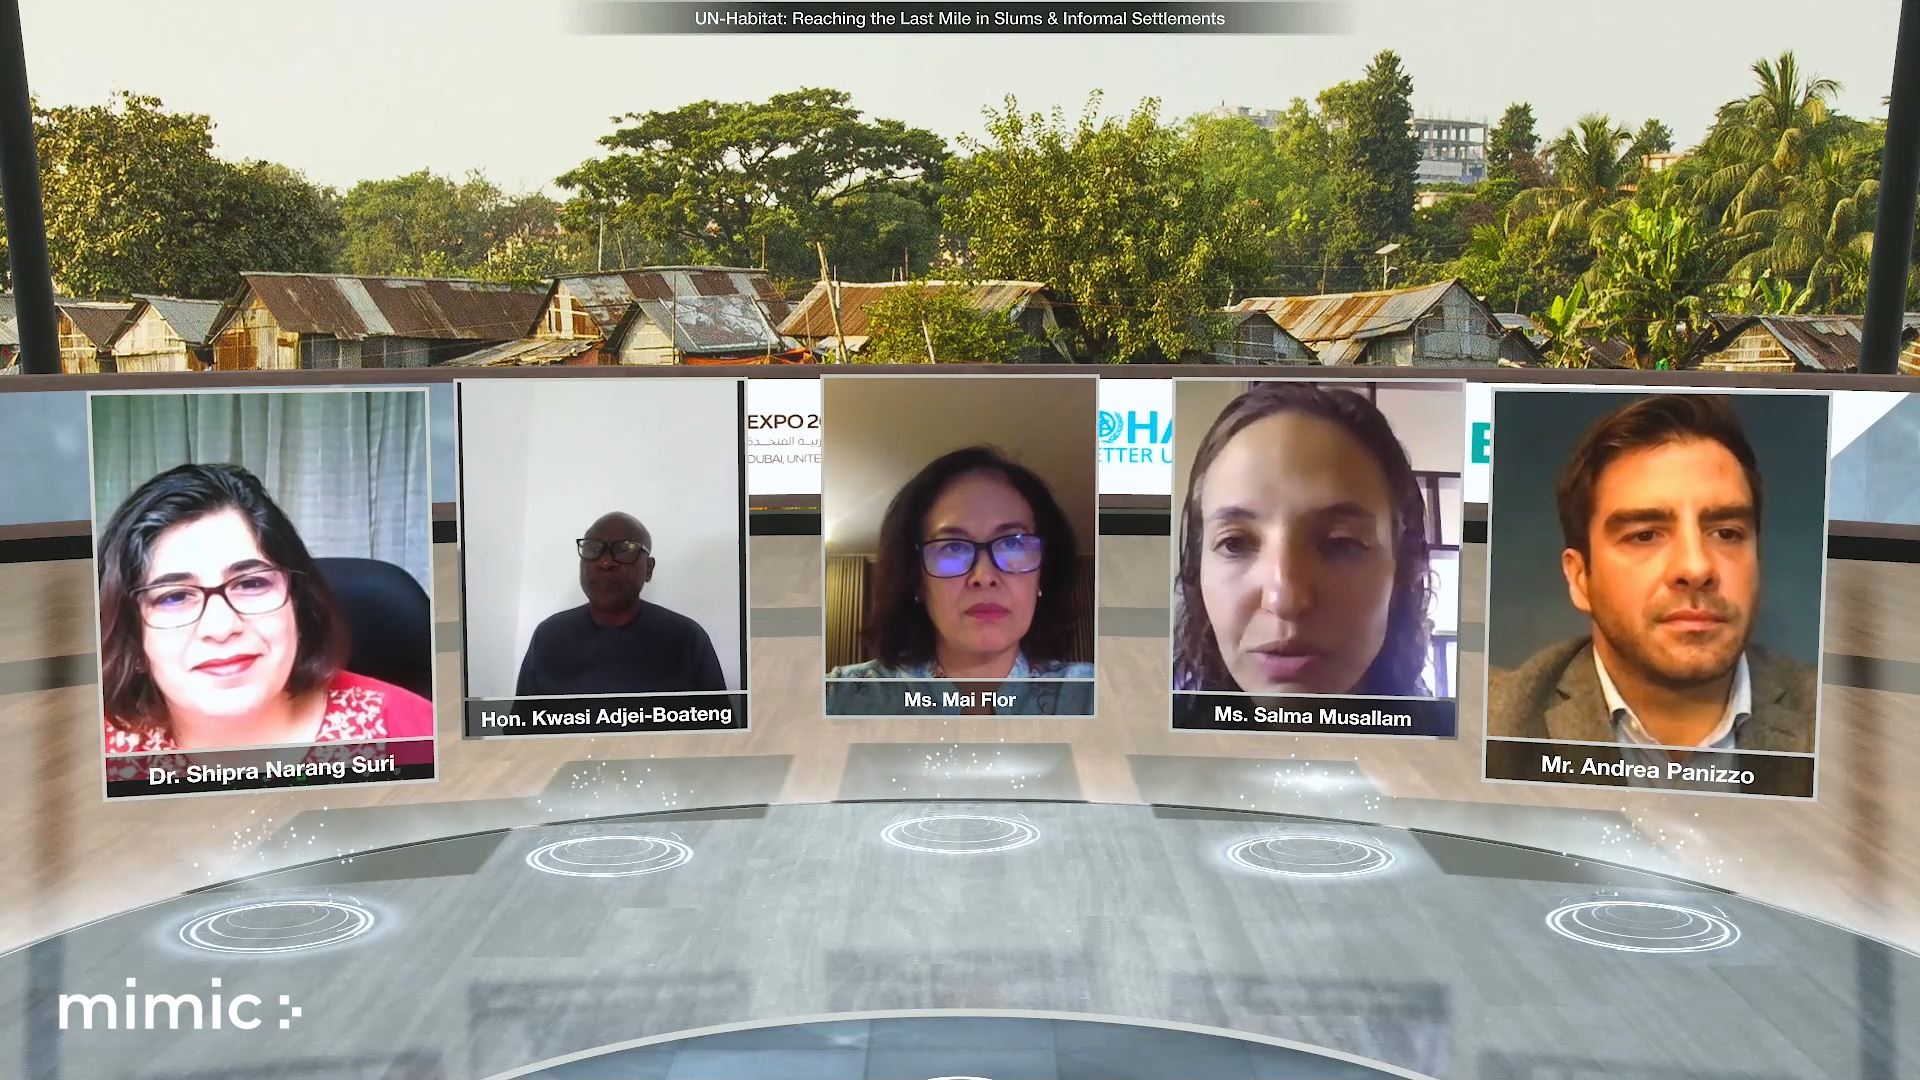 expo 2020 urban and rural development week virtual event panel discussion